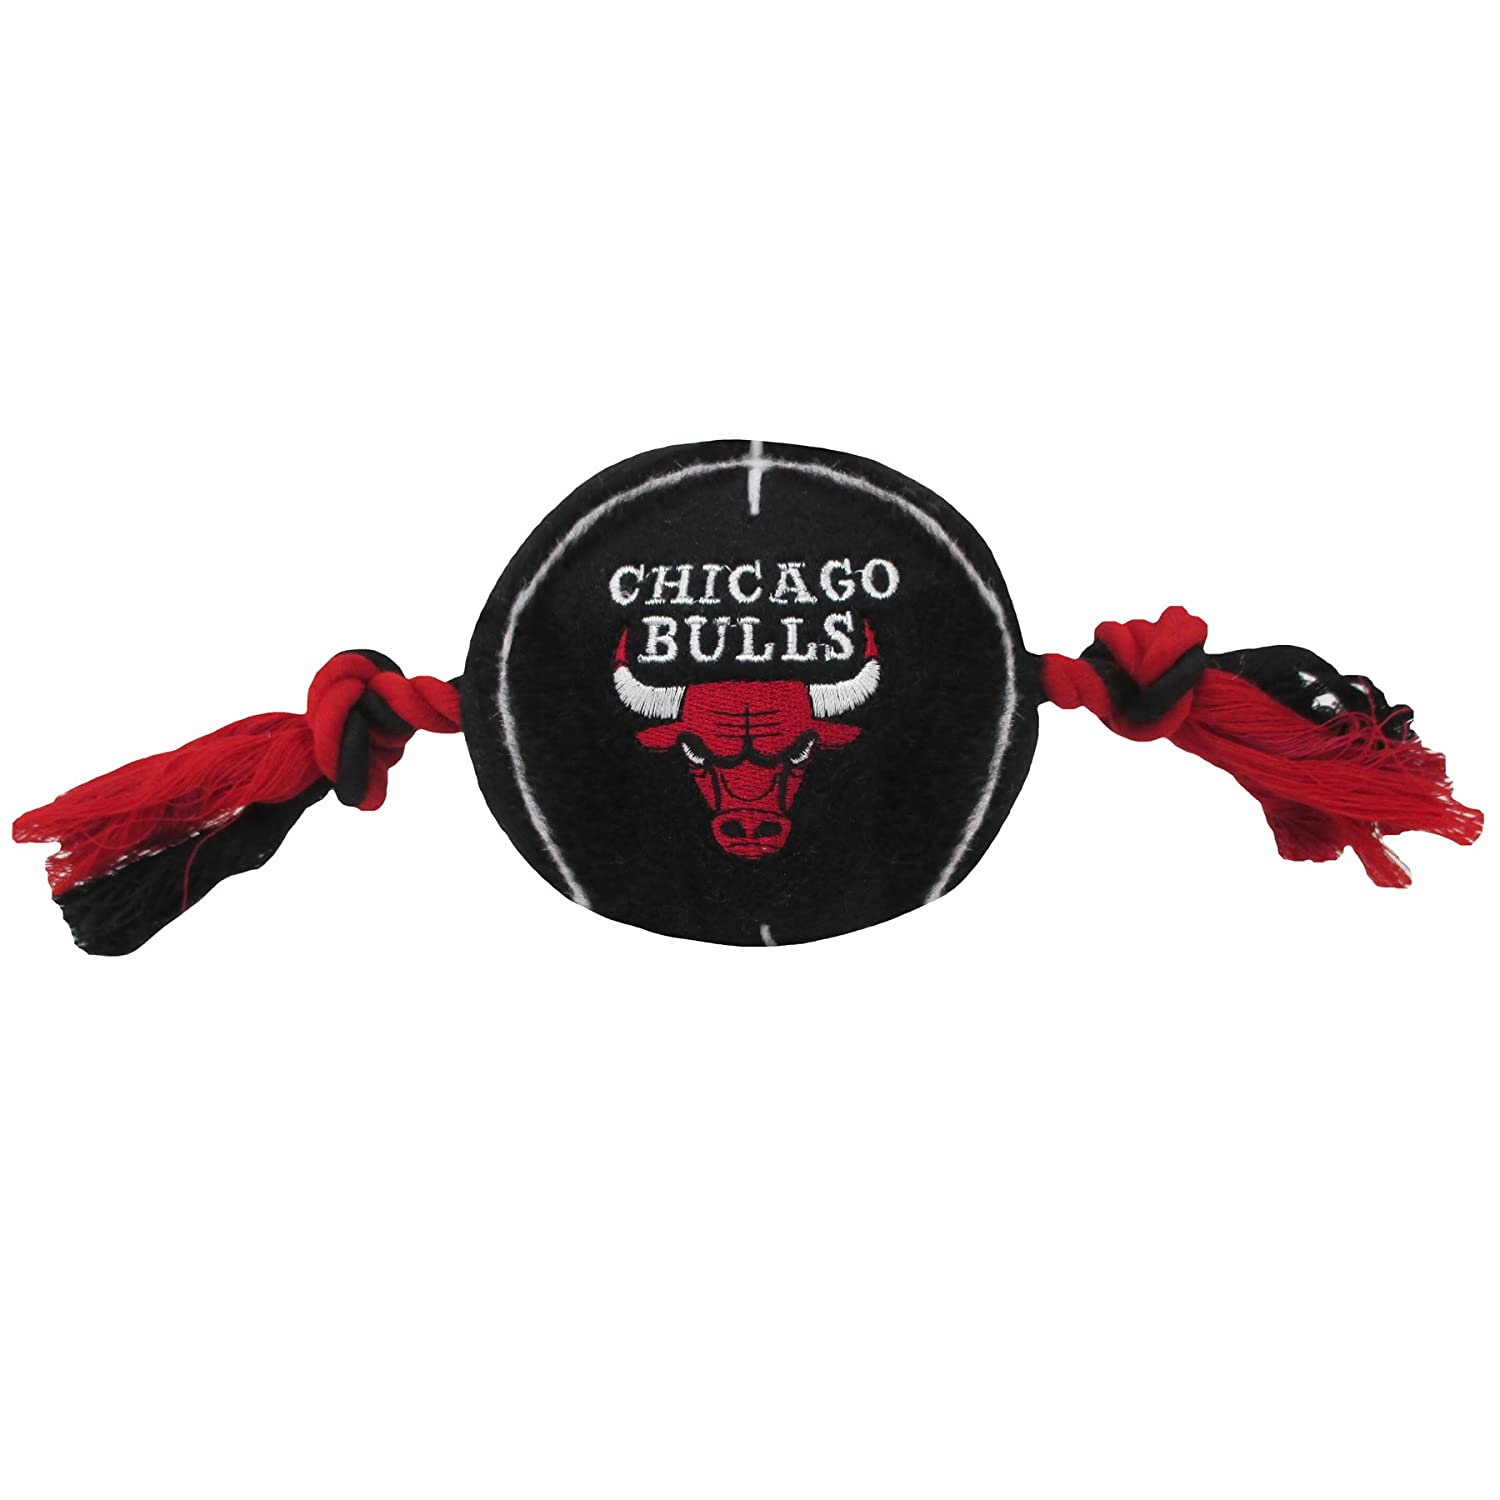 70%OFF Pets First Chicago Bulls Basketball Toy